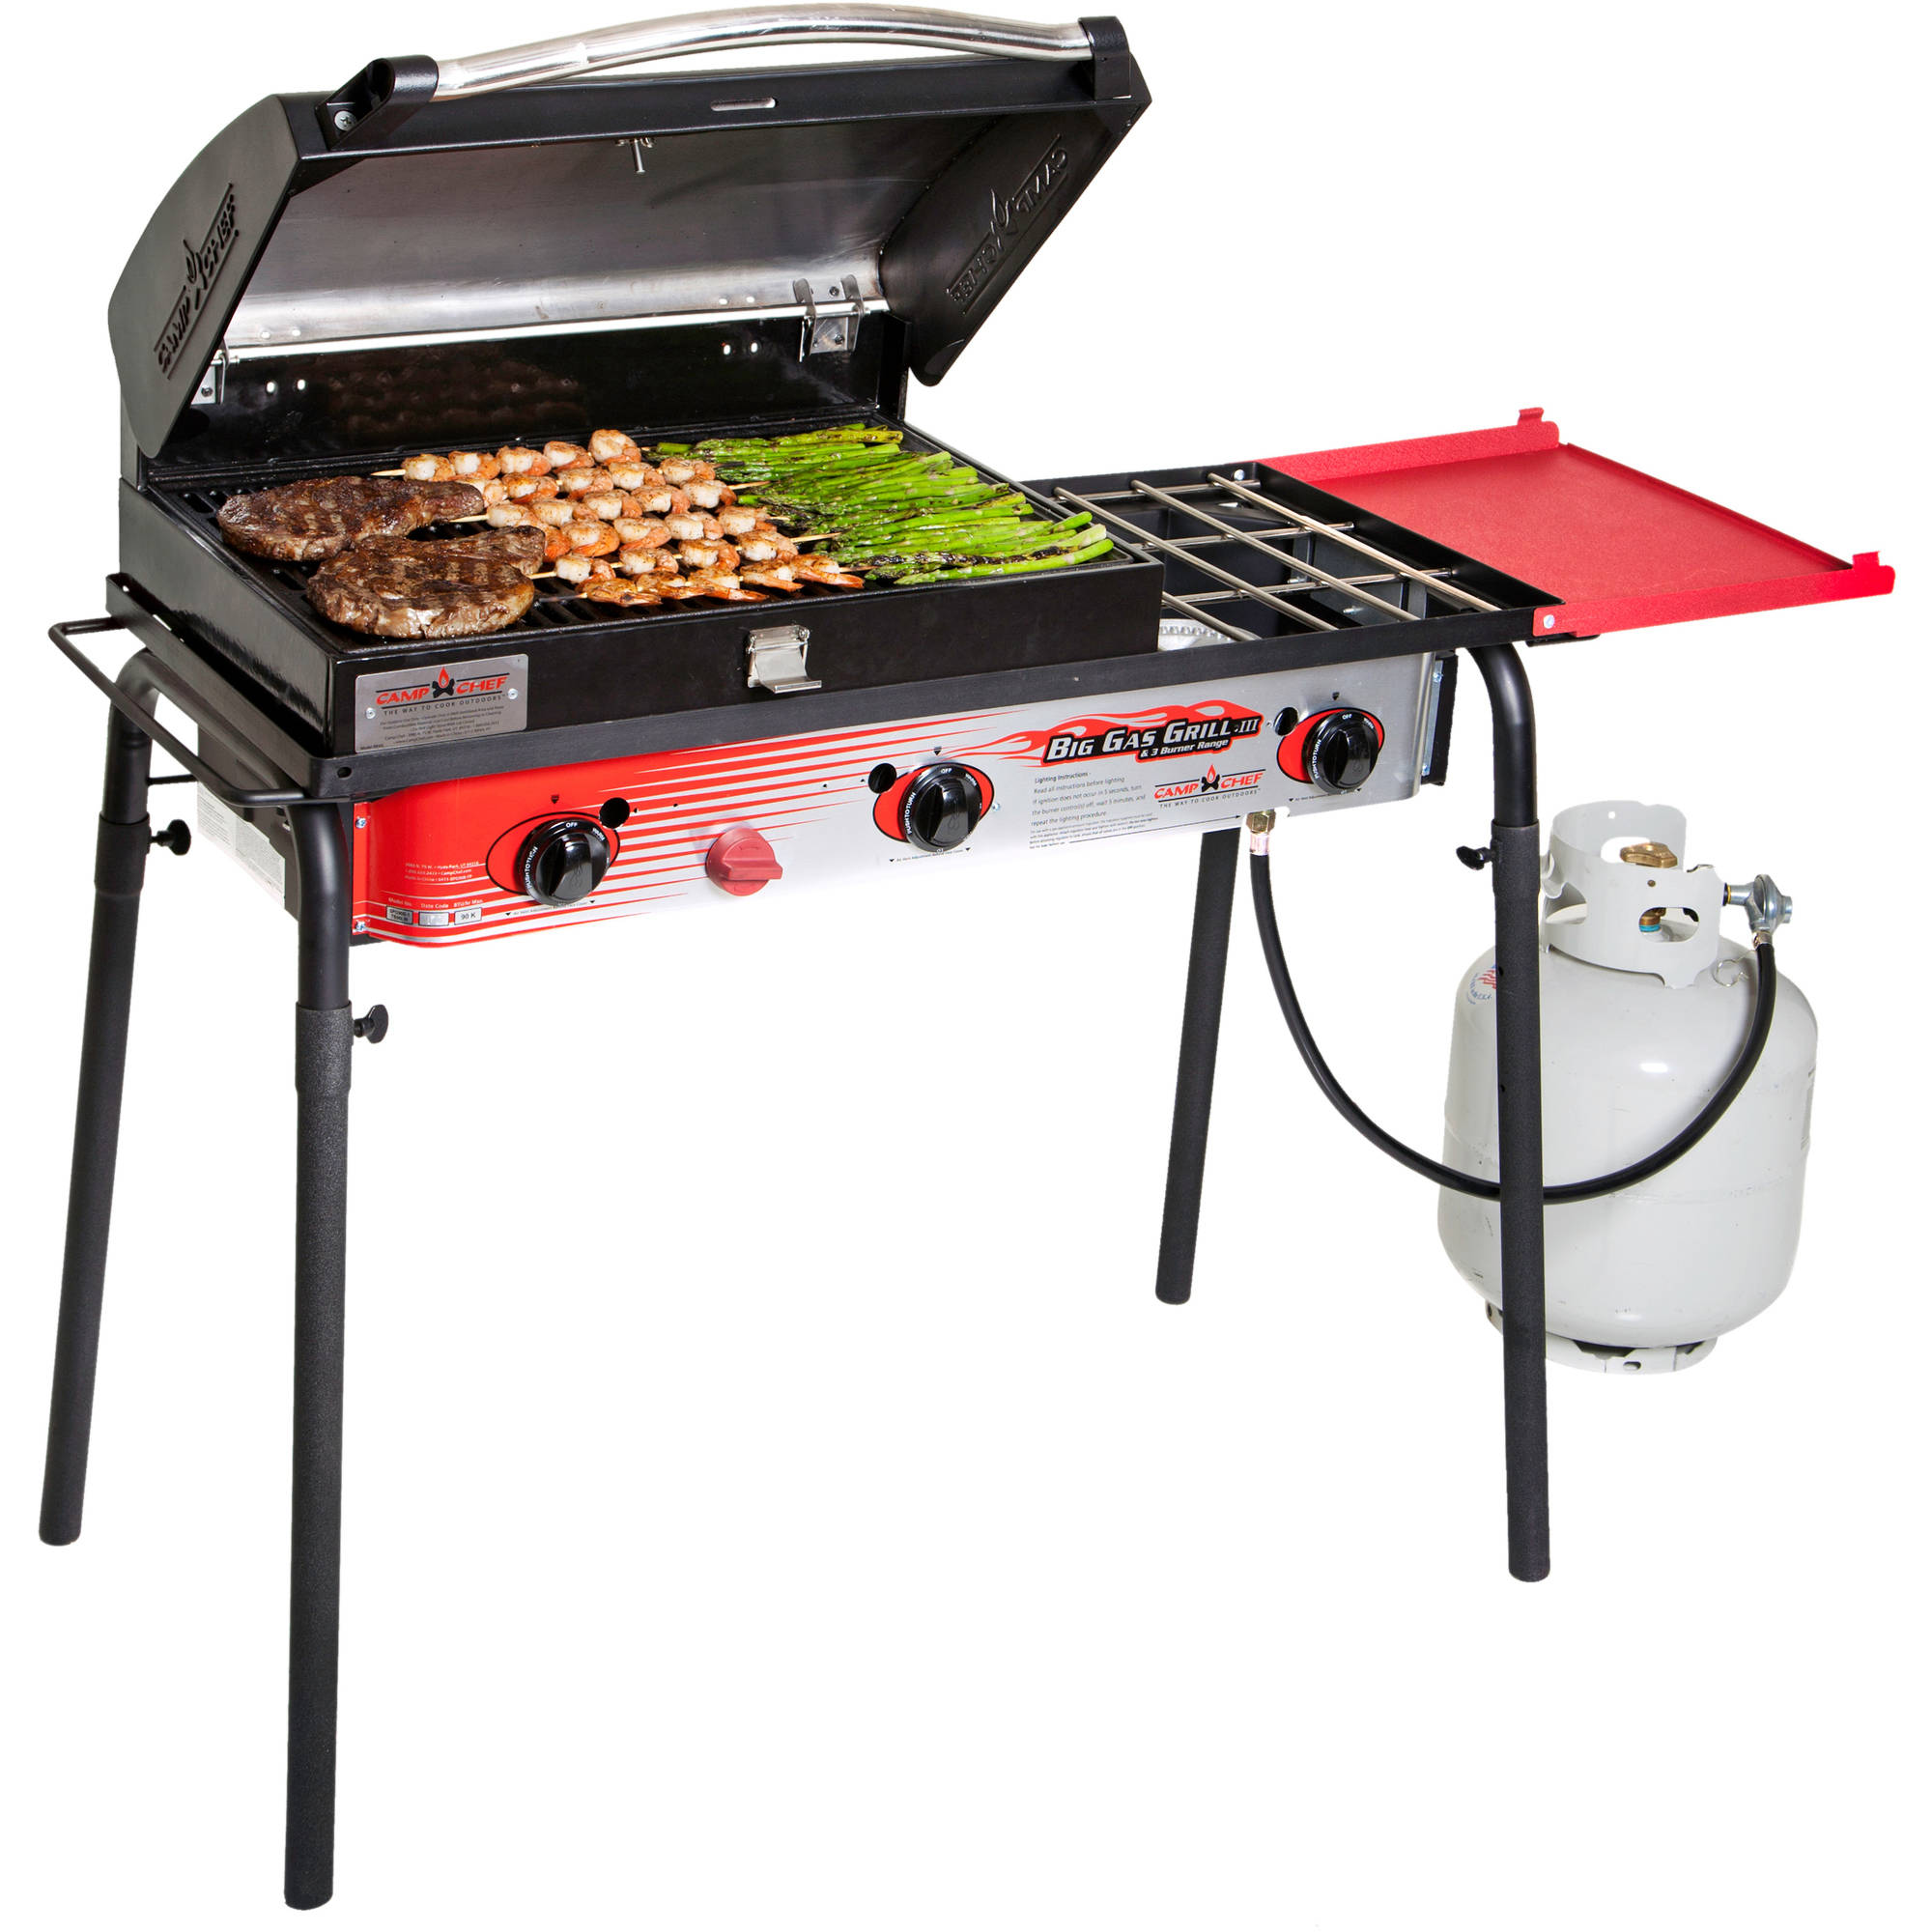 Camp Chef SPG-90B 30,000 BTU 3-Burner Big Gas Grill